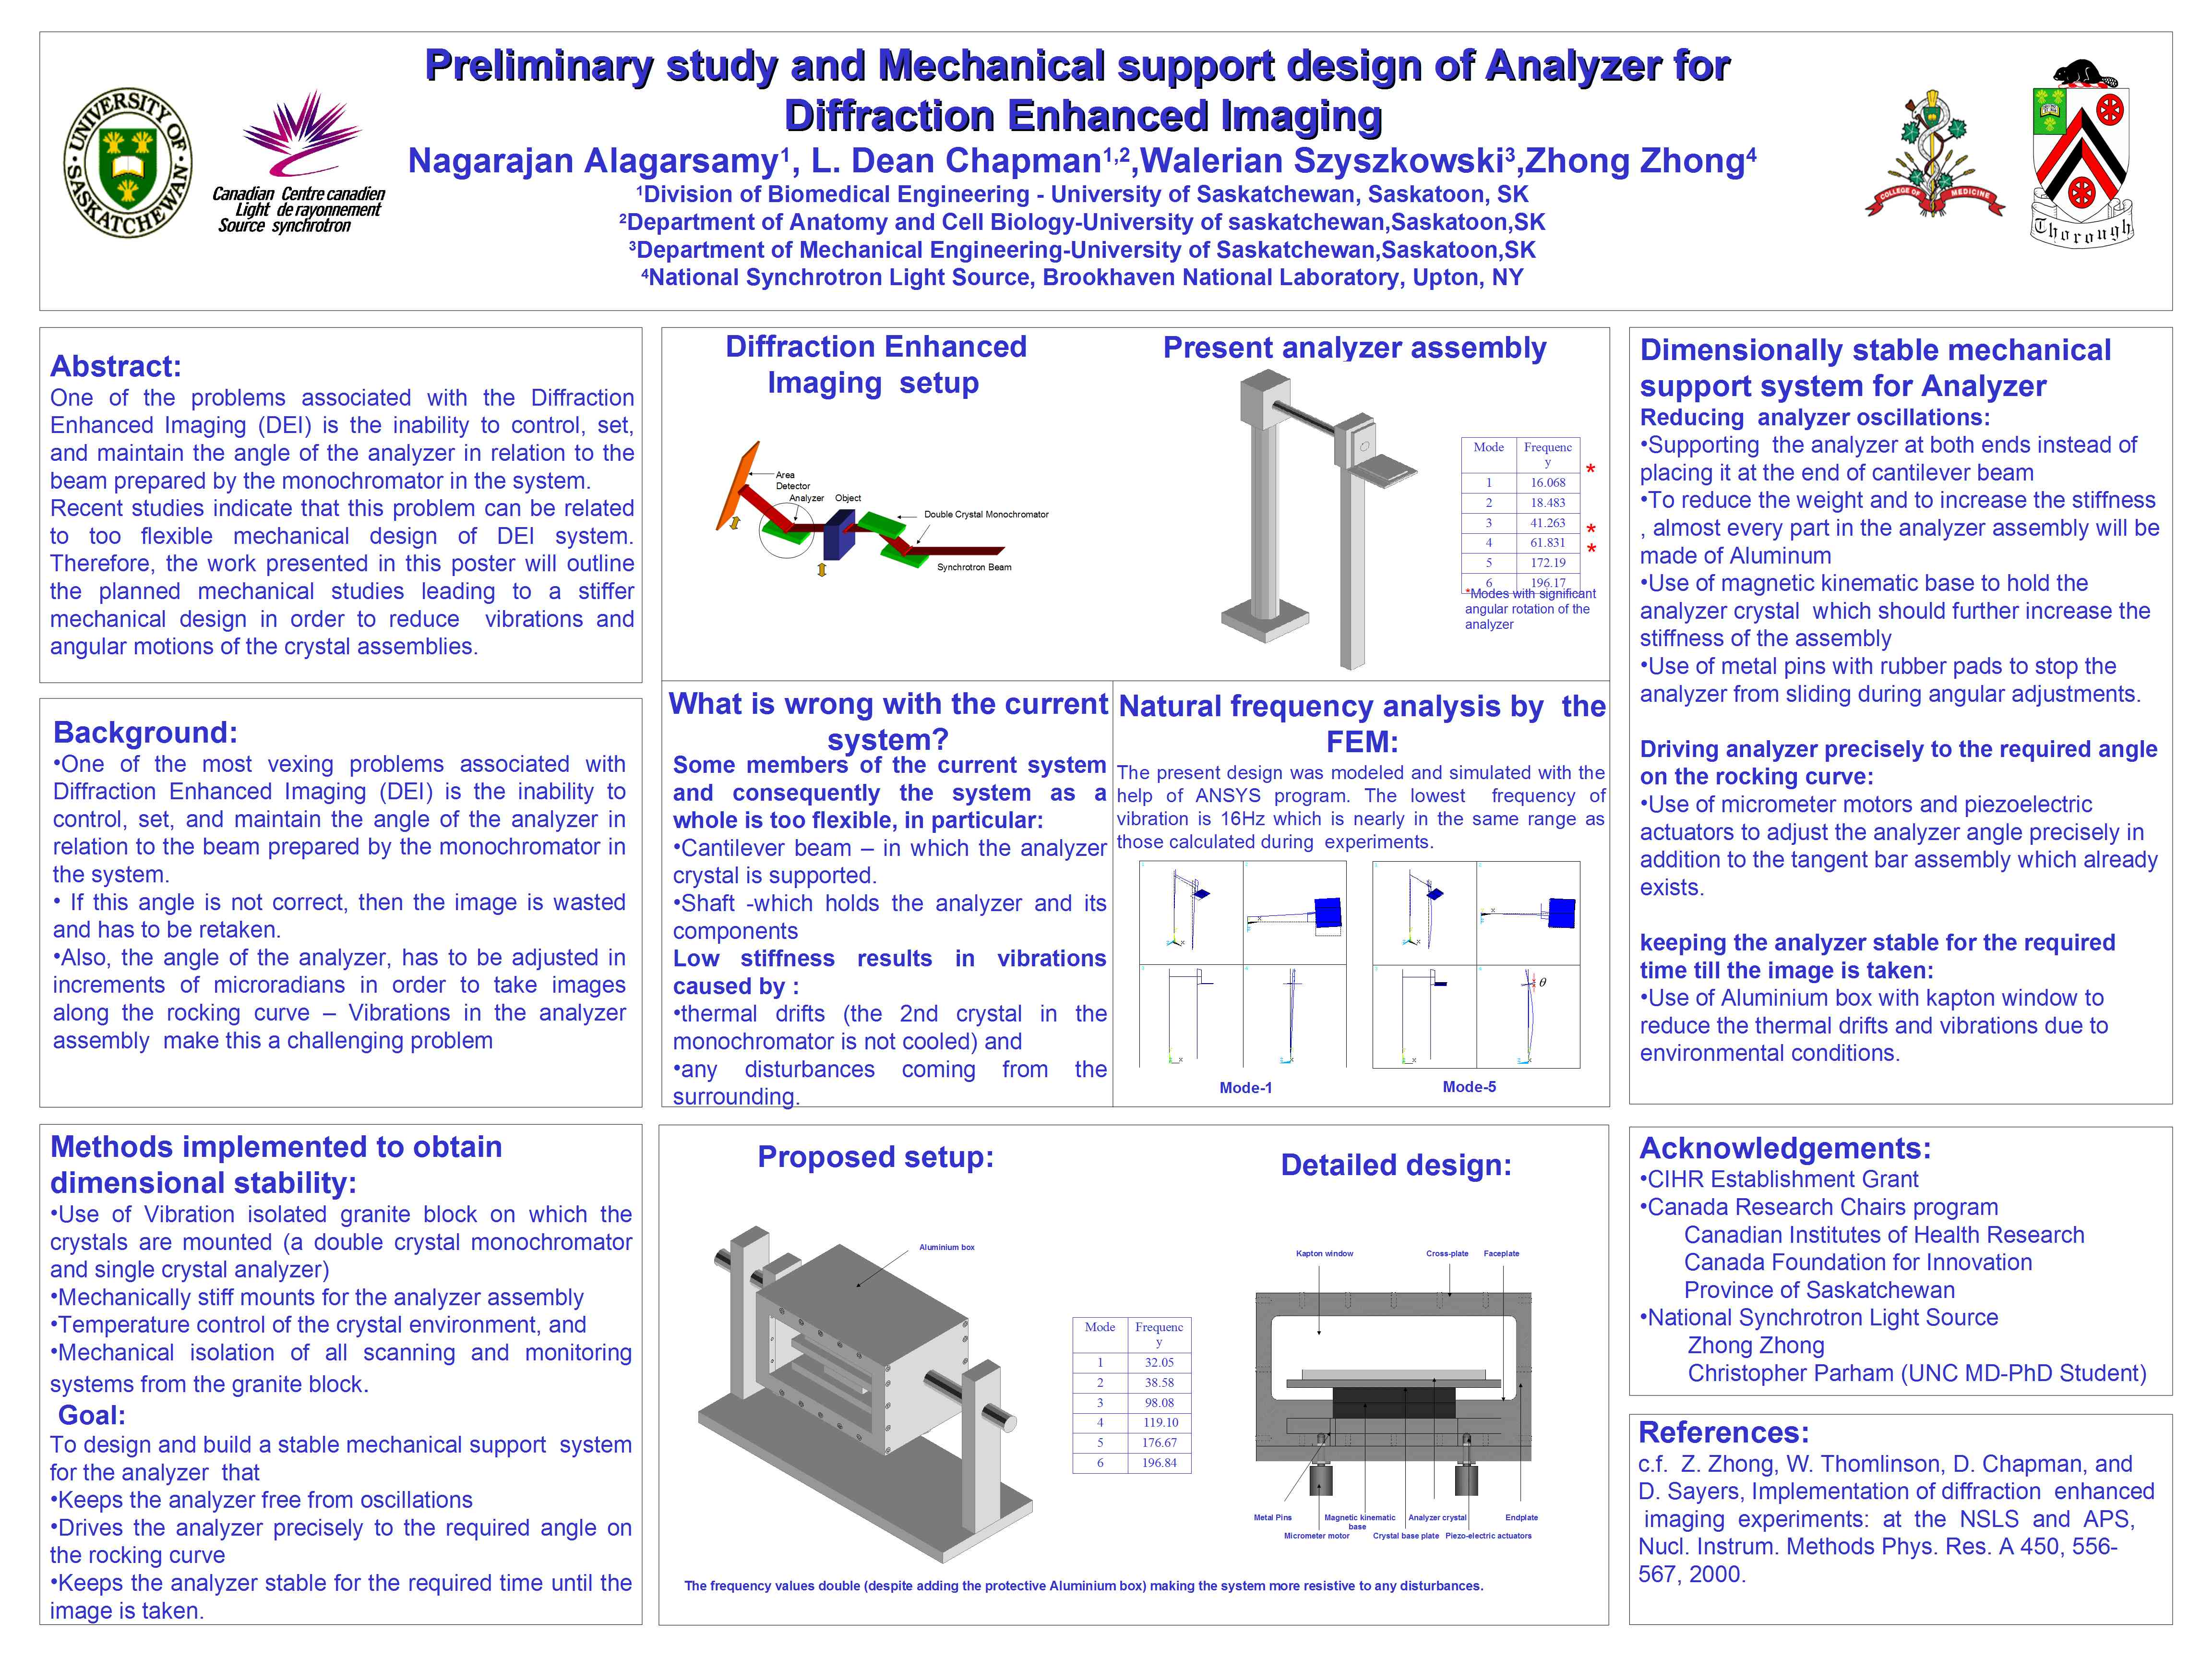 Preliminary study and Mechanical support design of Analyzer for Diffraction Enhanced Imaging Image